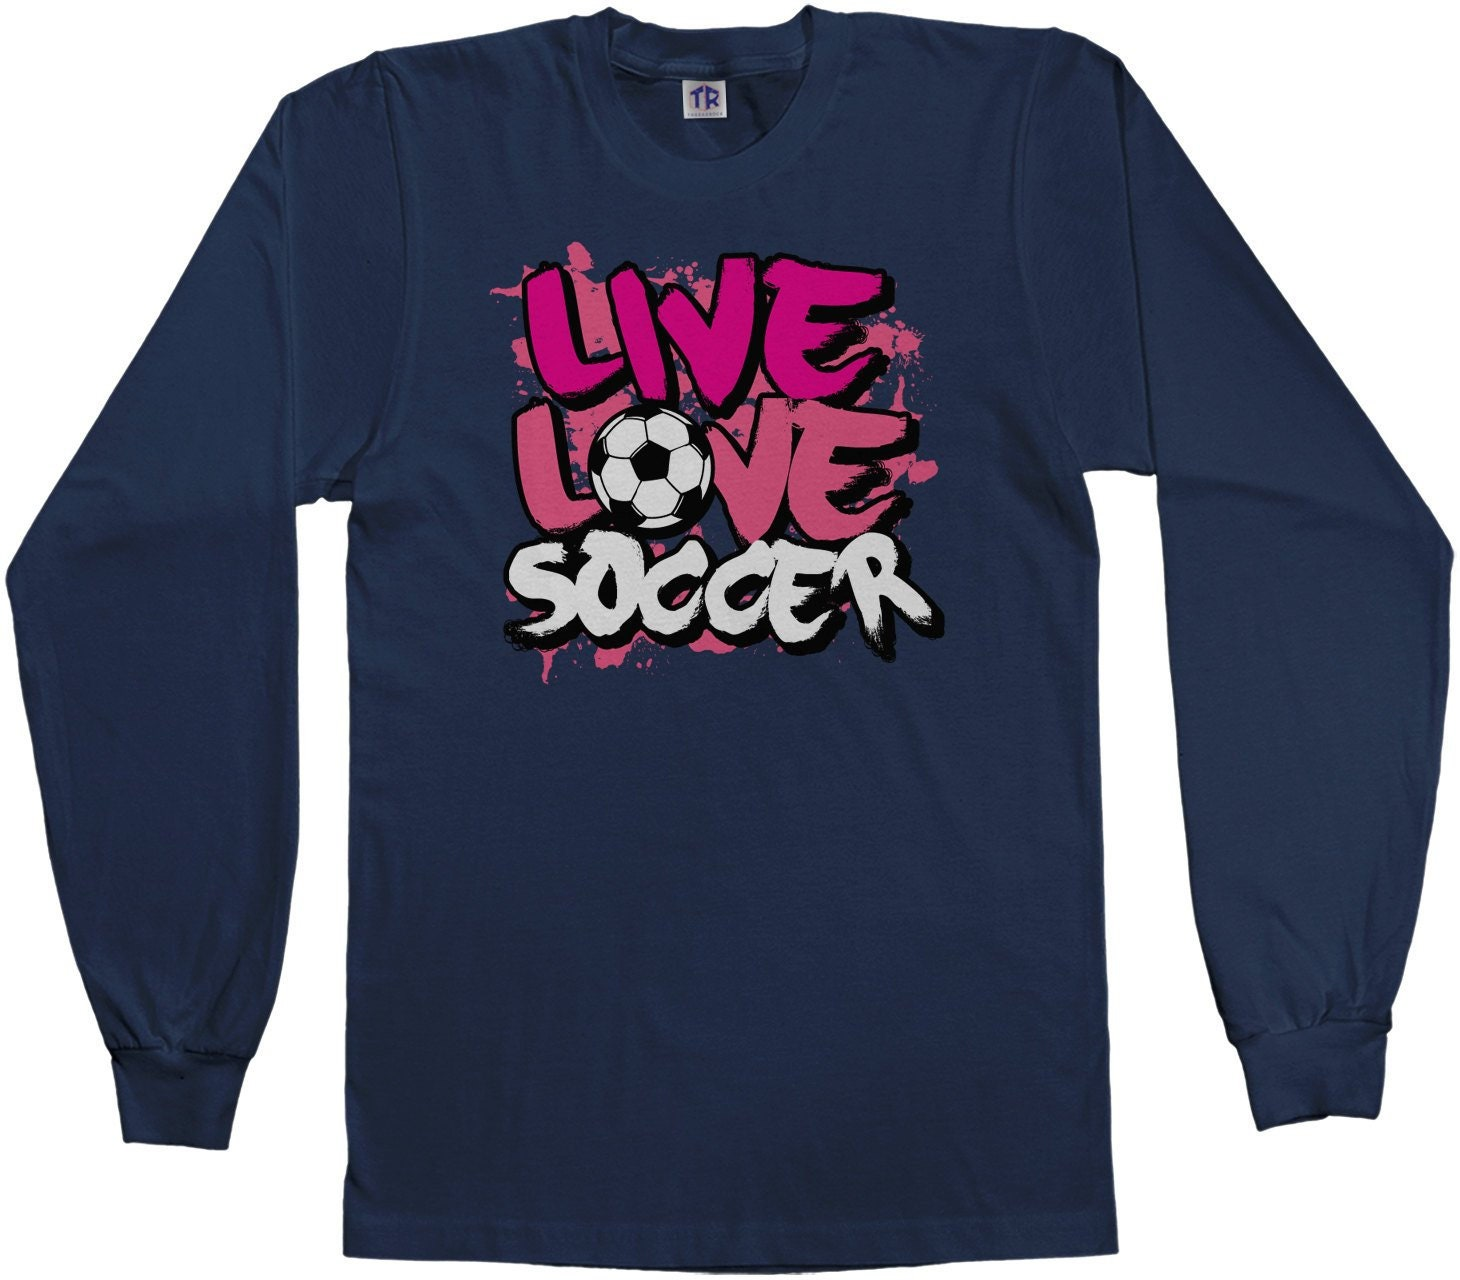 Live Love Soccer Girls Youth Long Sleeve T-shirt Unisex Tshirt